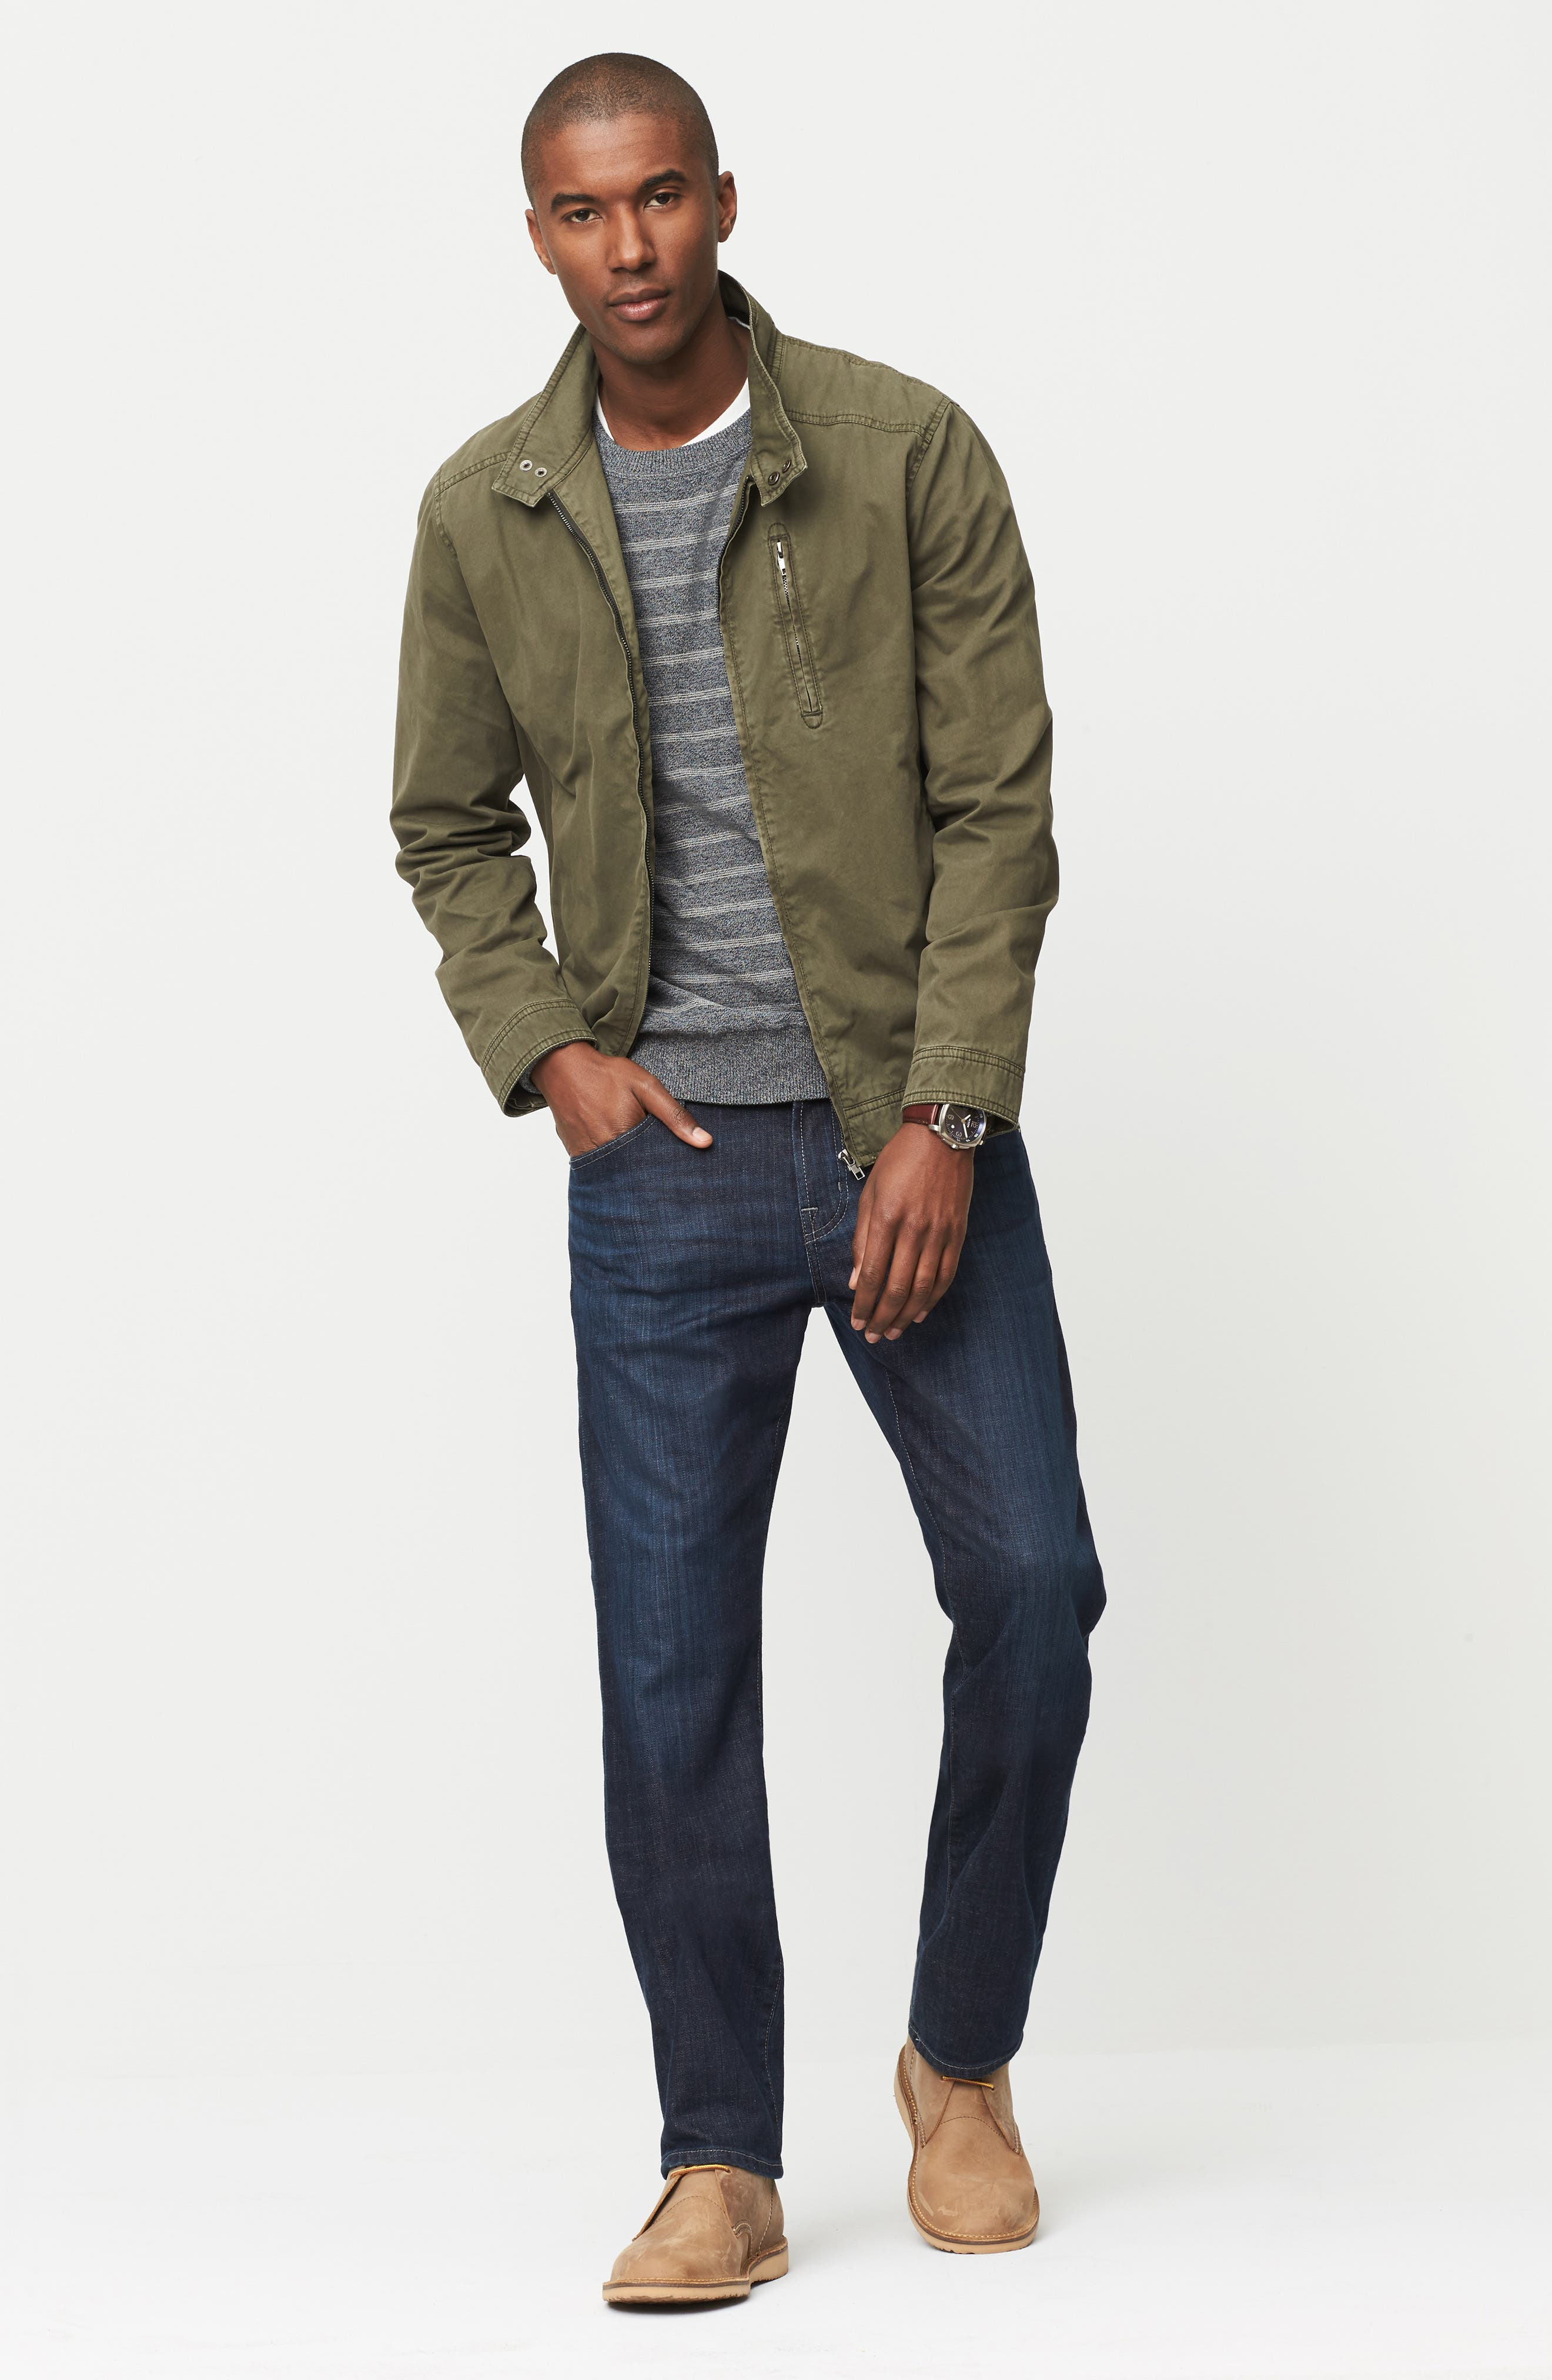 Rodd & Gunn Jacket, Billy Reid Sweatshirt & AG Jeans Outfit with Accessories